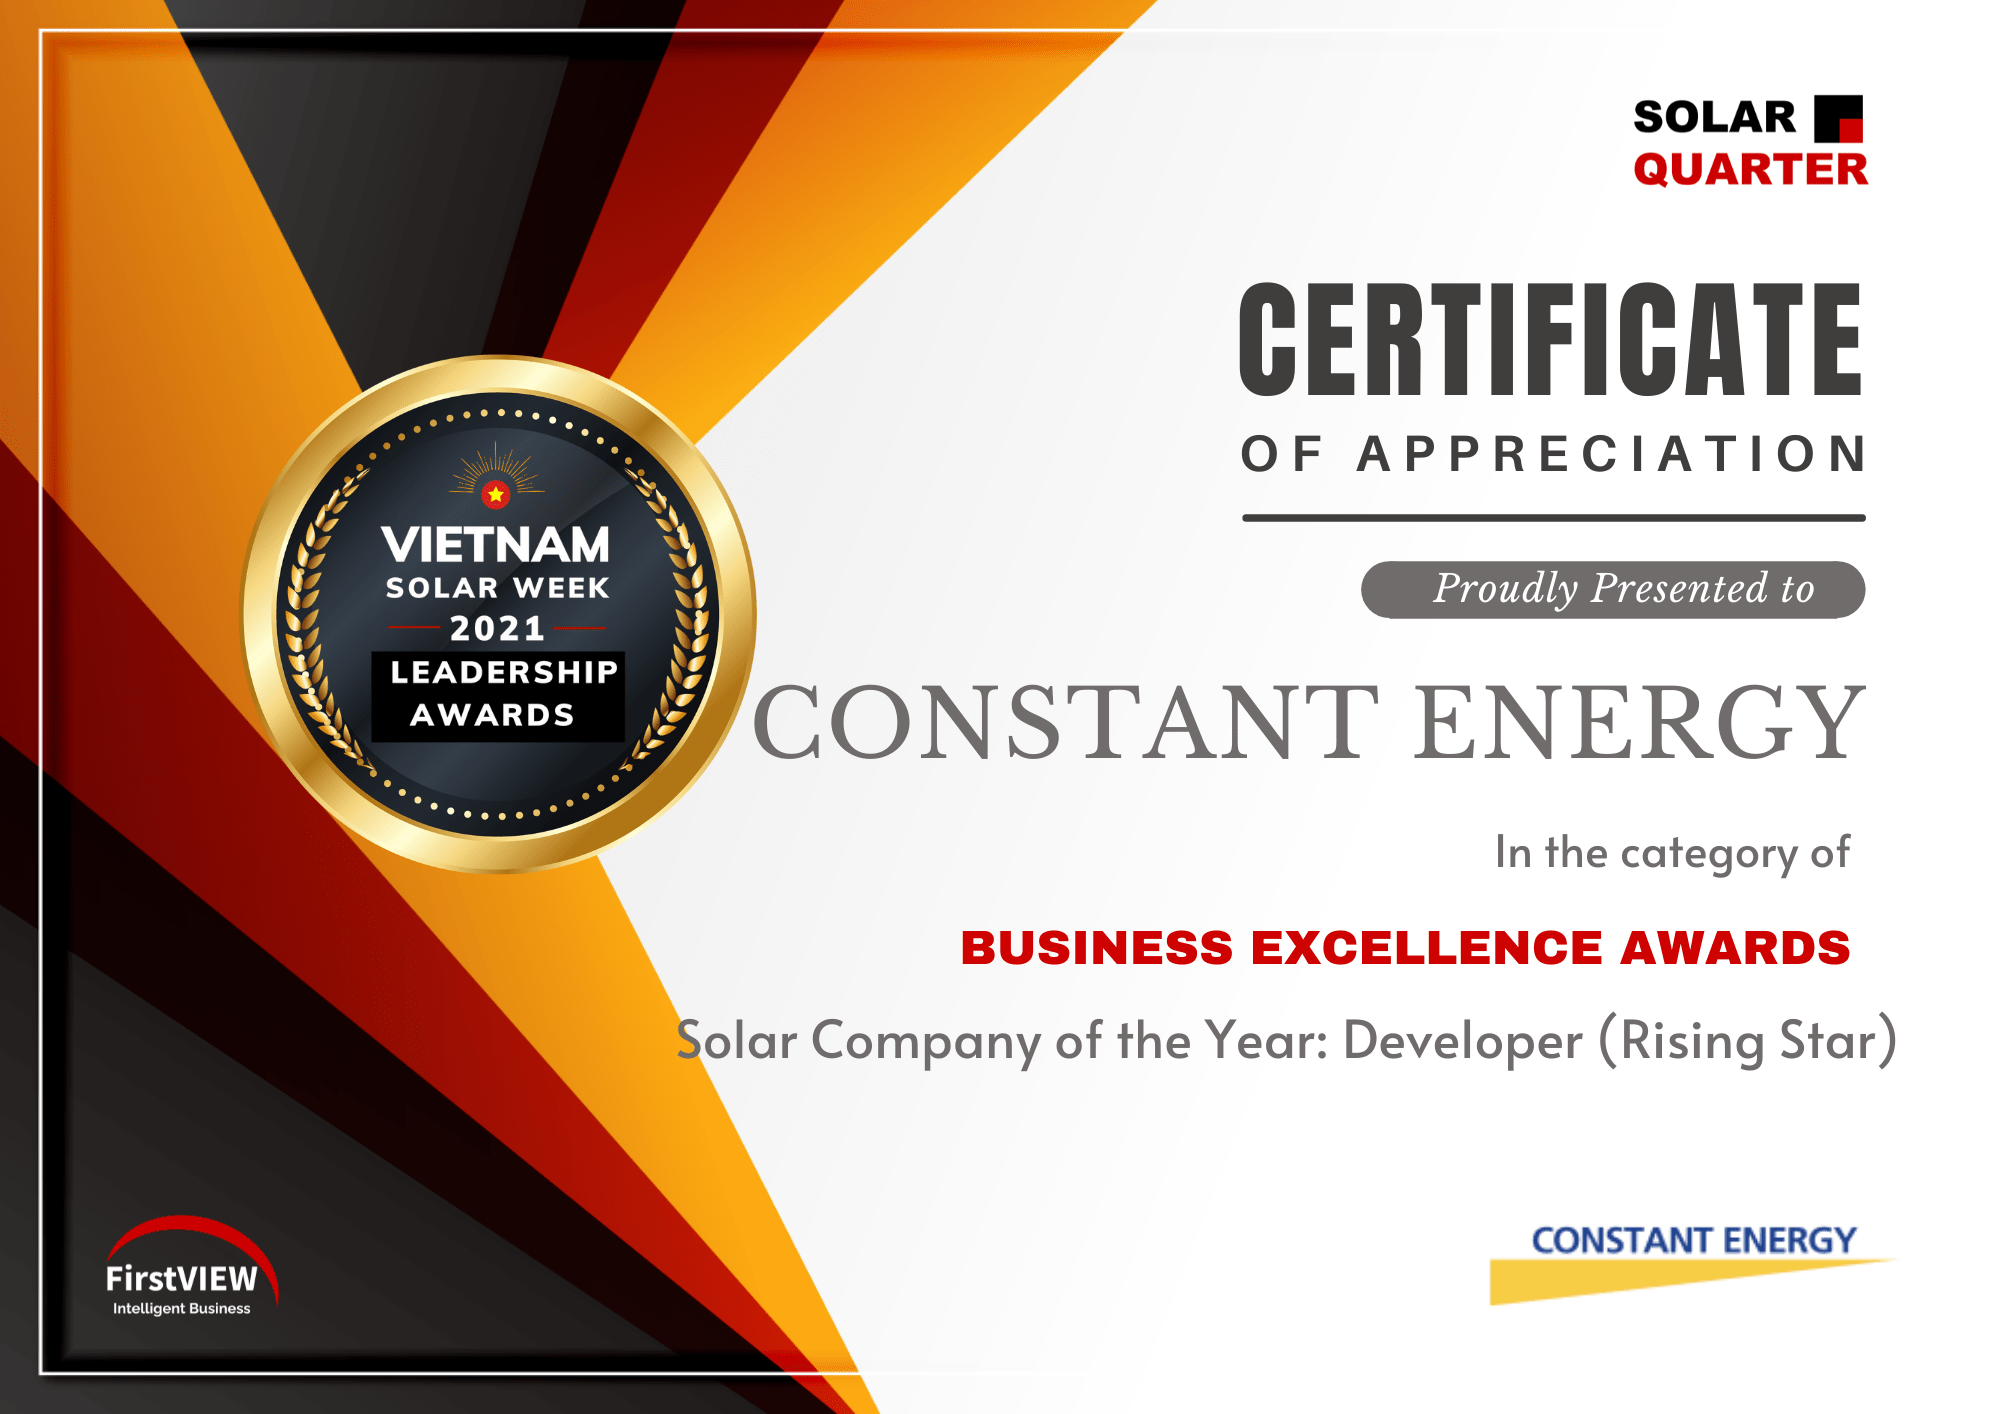 Business Excellence Award for Constant Energy:Solar Company of the Year Developer (Rising Star)